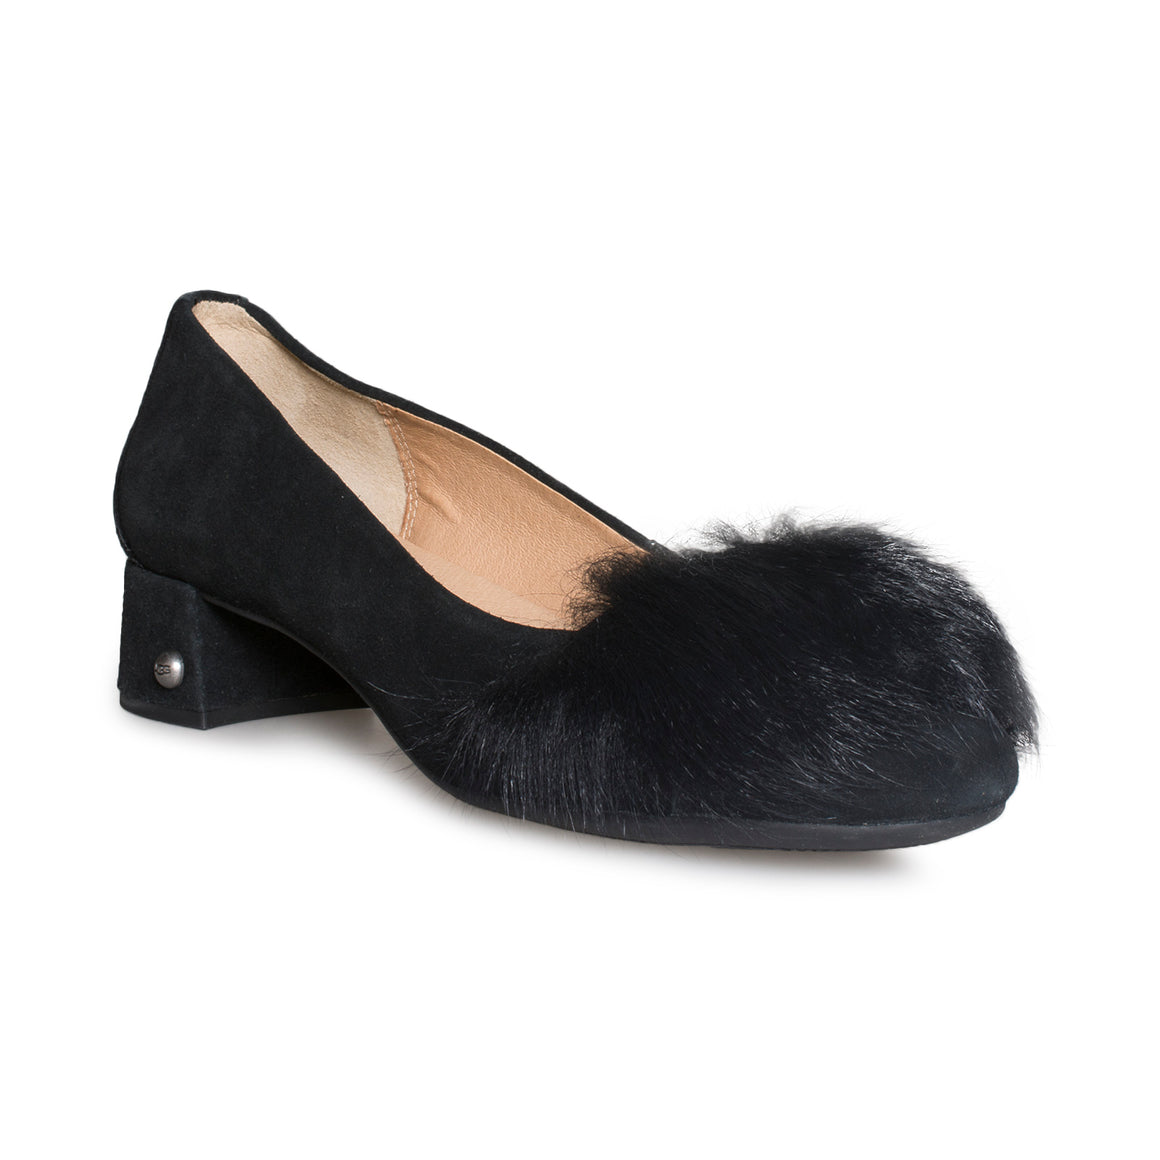 UGG Koa Fluff Heel Black Shoes - Women's